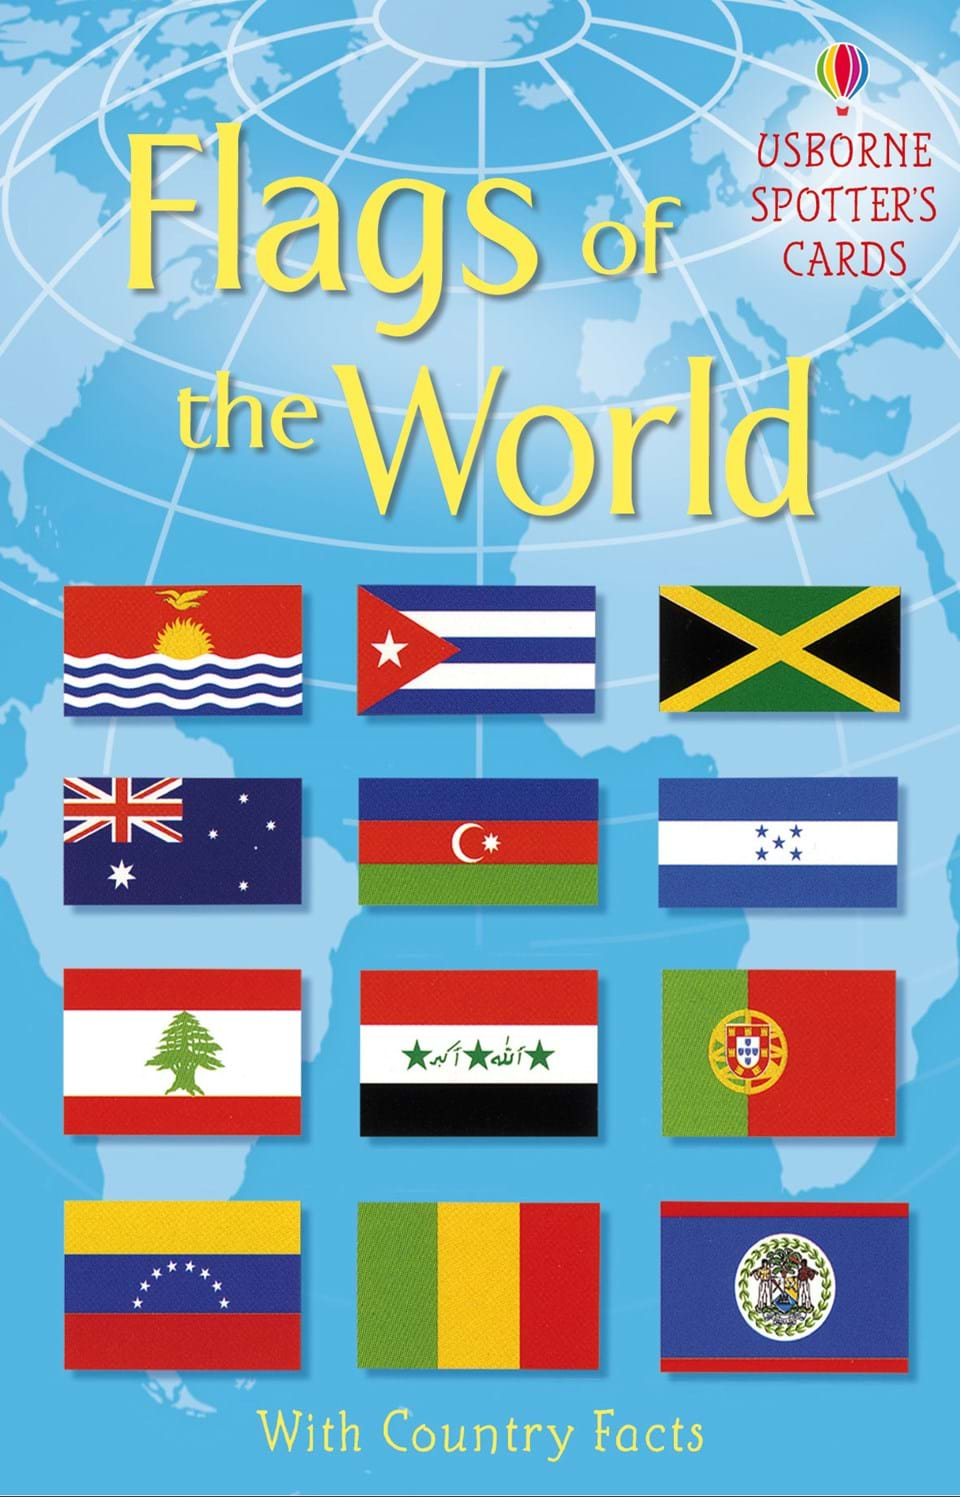 Flags Of The World Cards At Usborne Children S Books